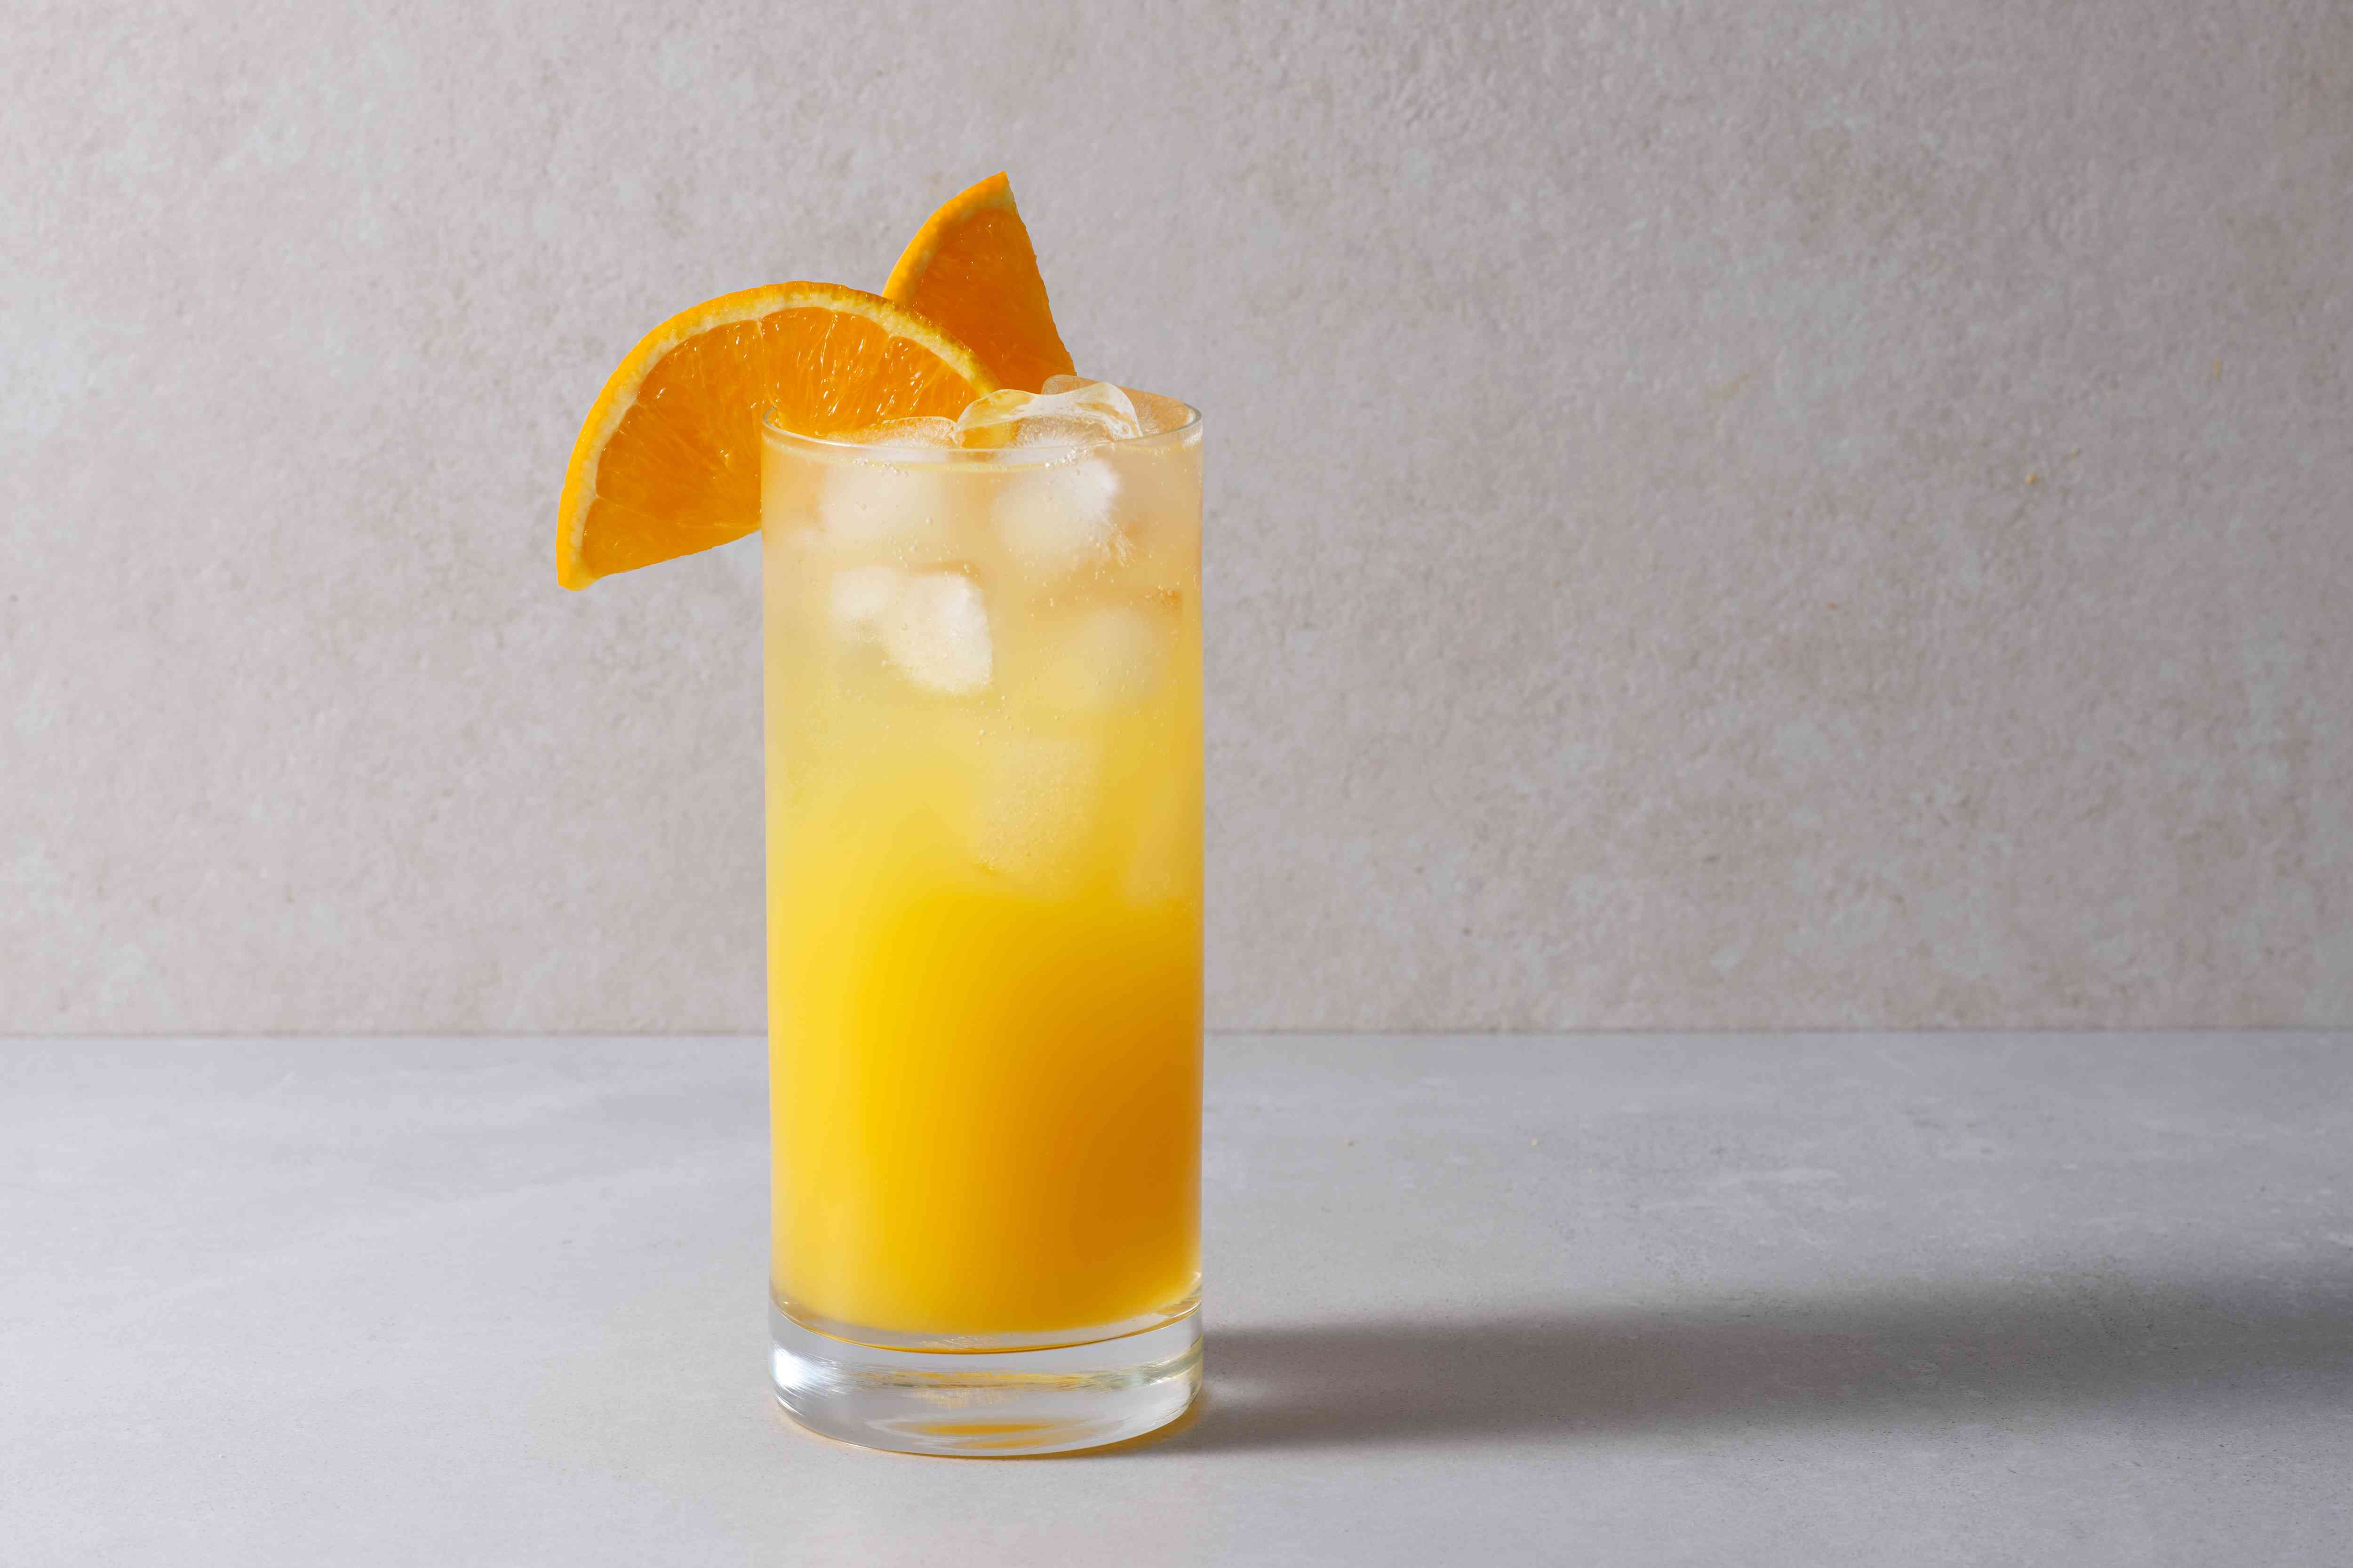 The Bocce Ball in a glass, garnished with orange slices